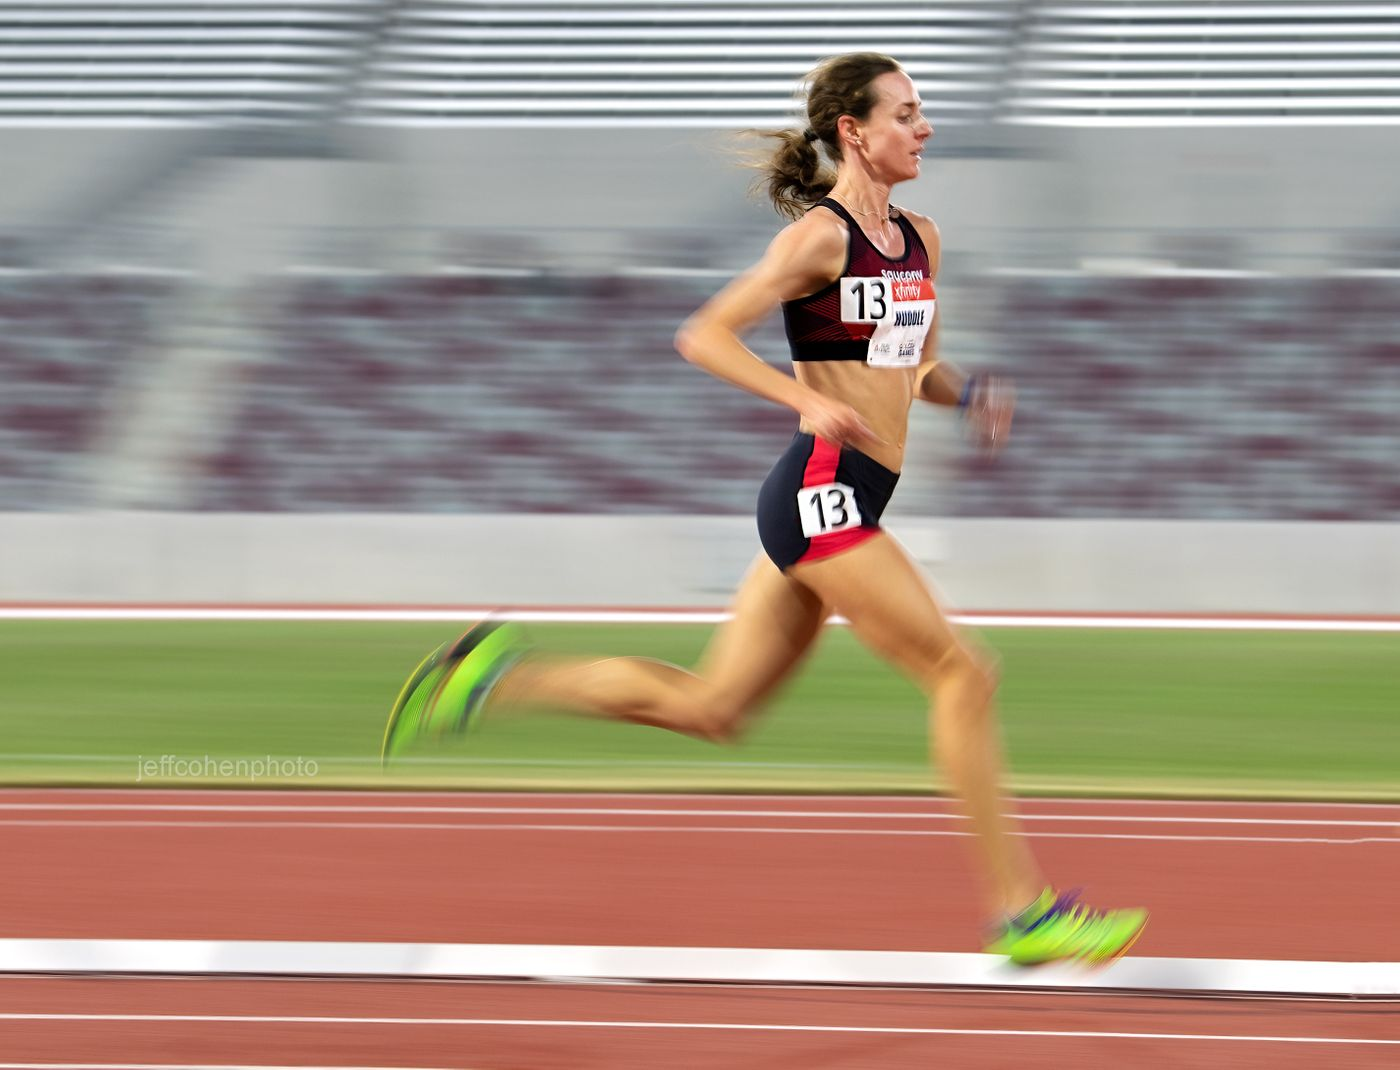 Molly Huddle, 5000 meters , 2021 USATF Golden Games